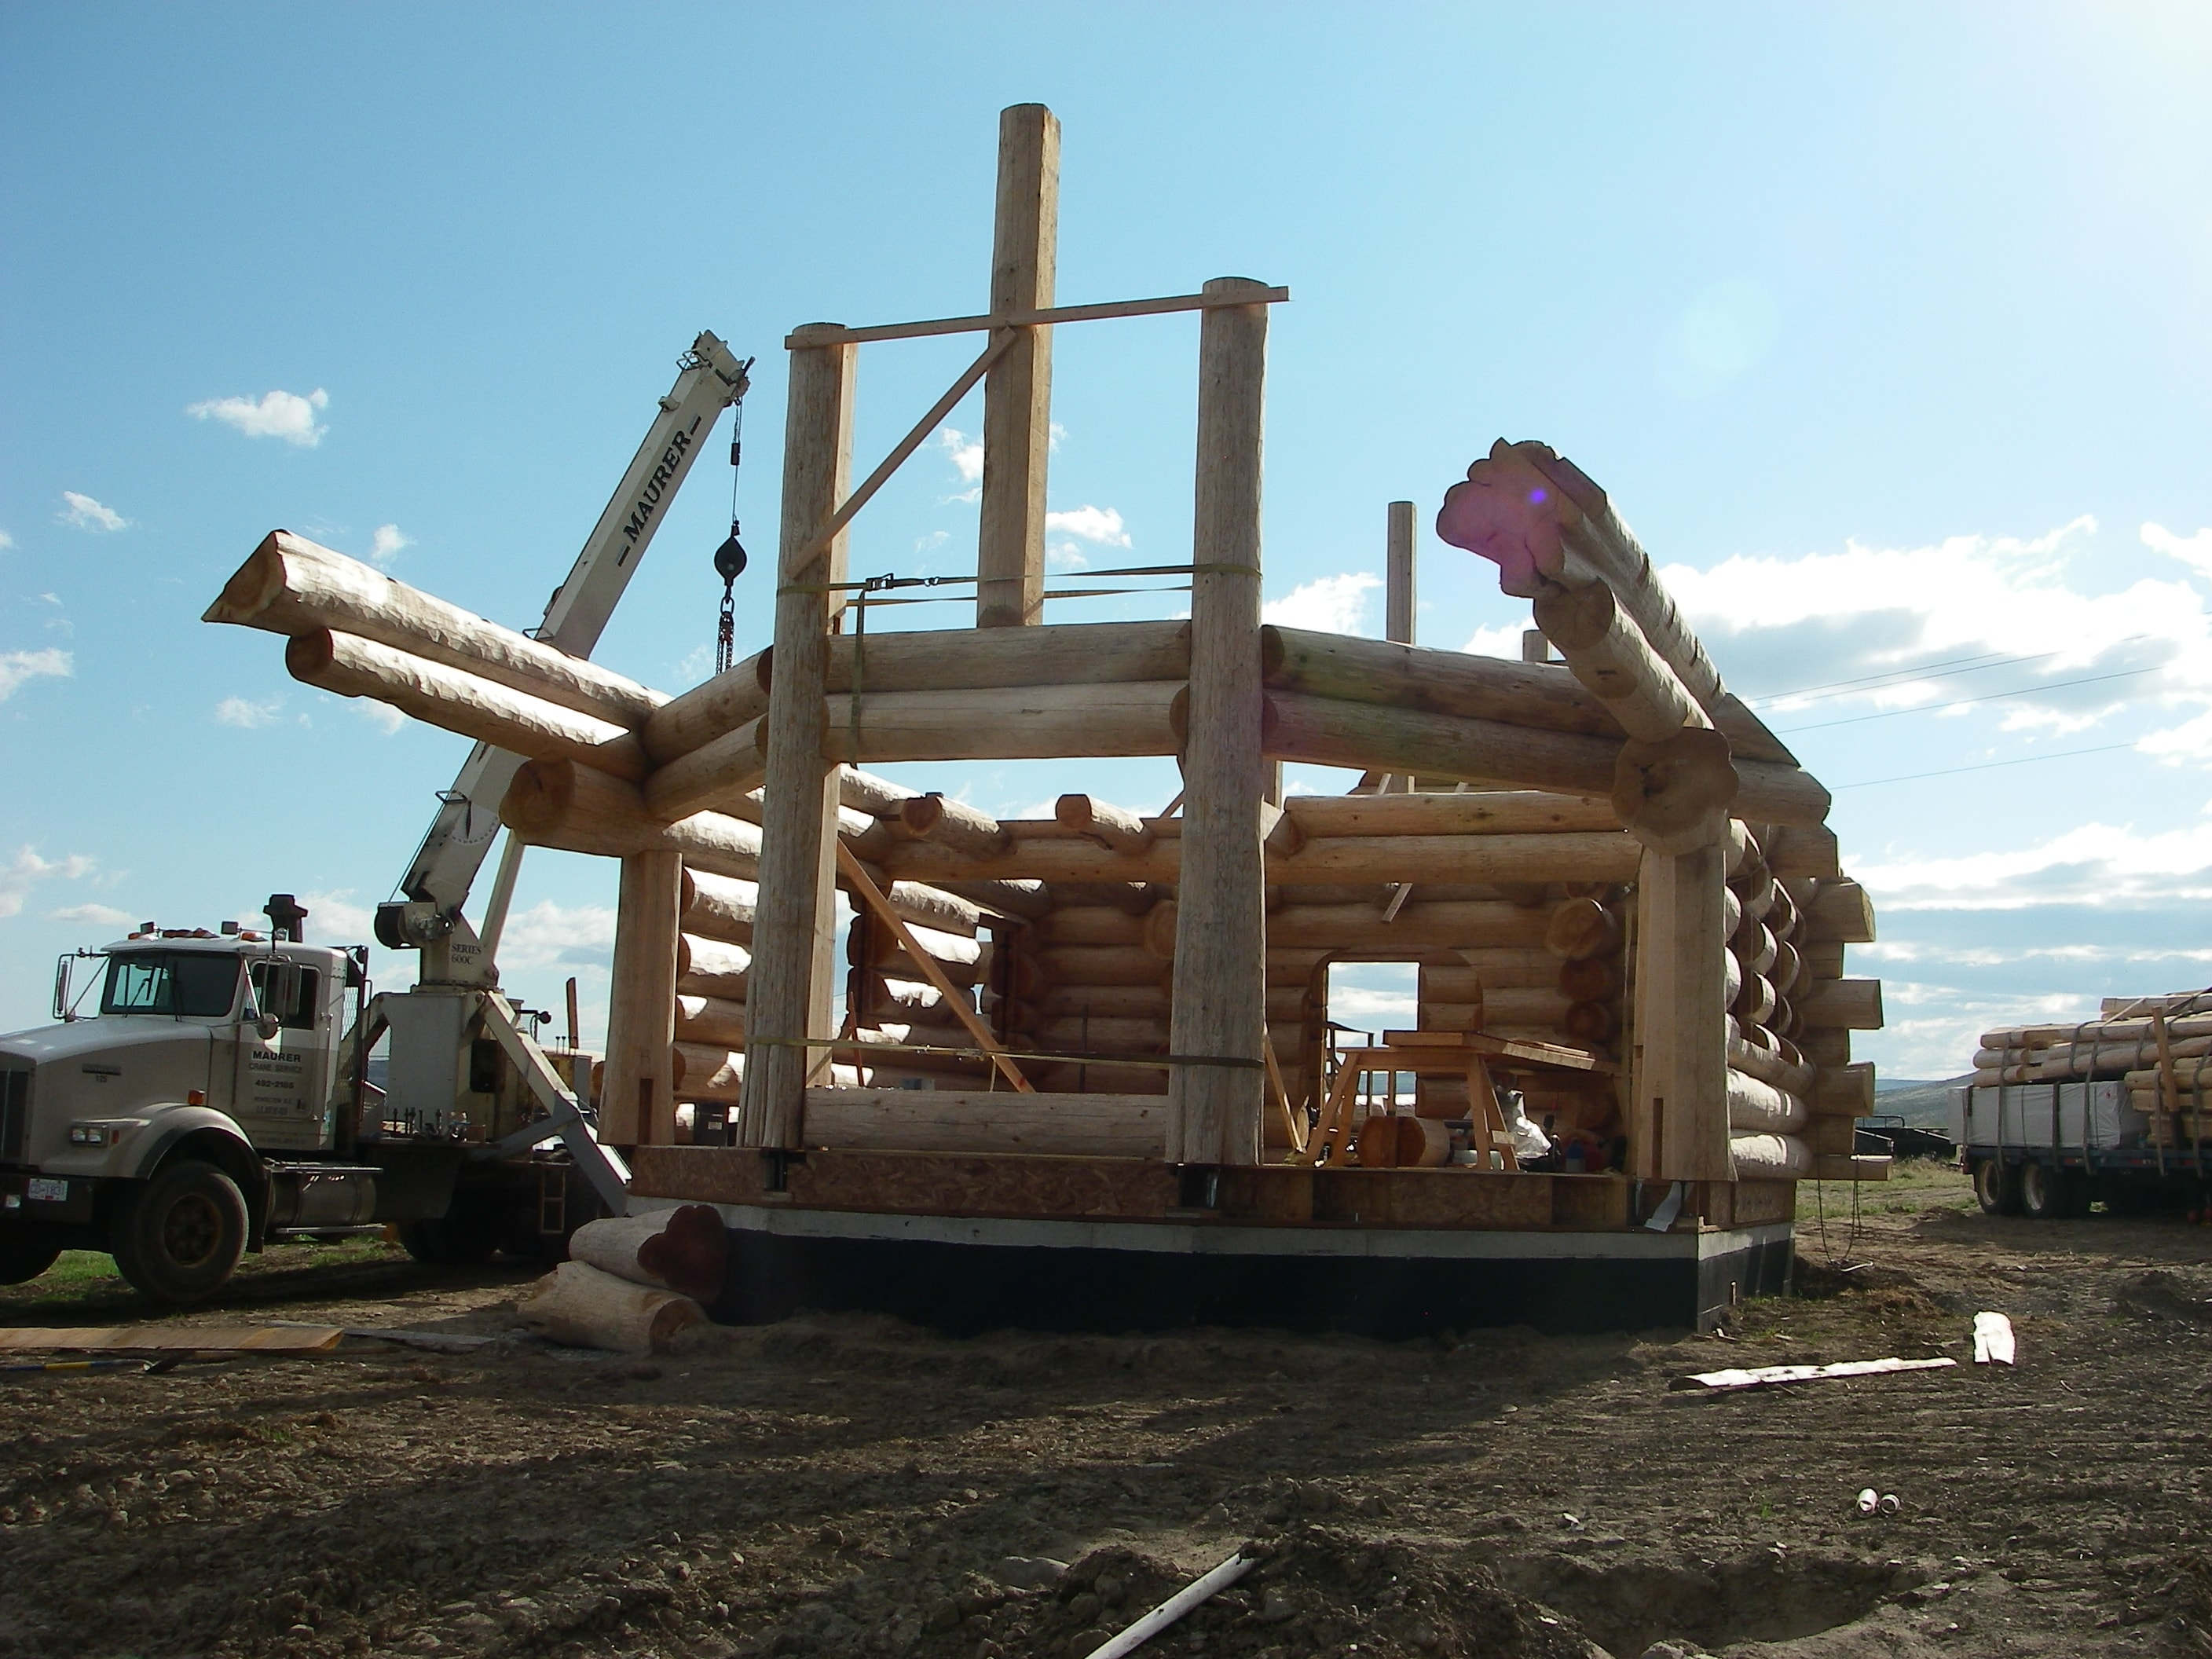 Log home construction in progress